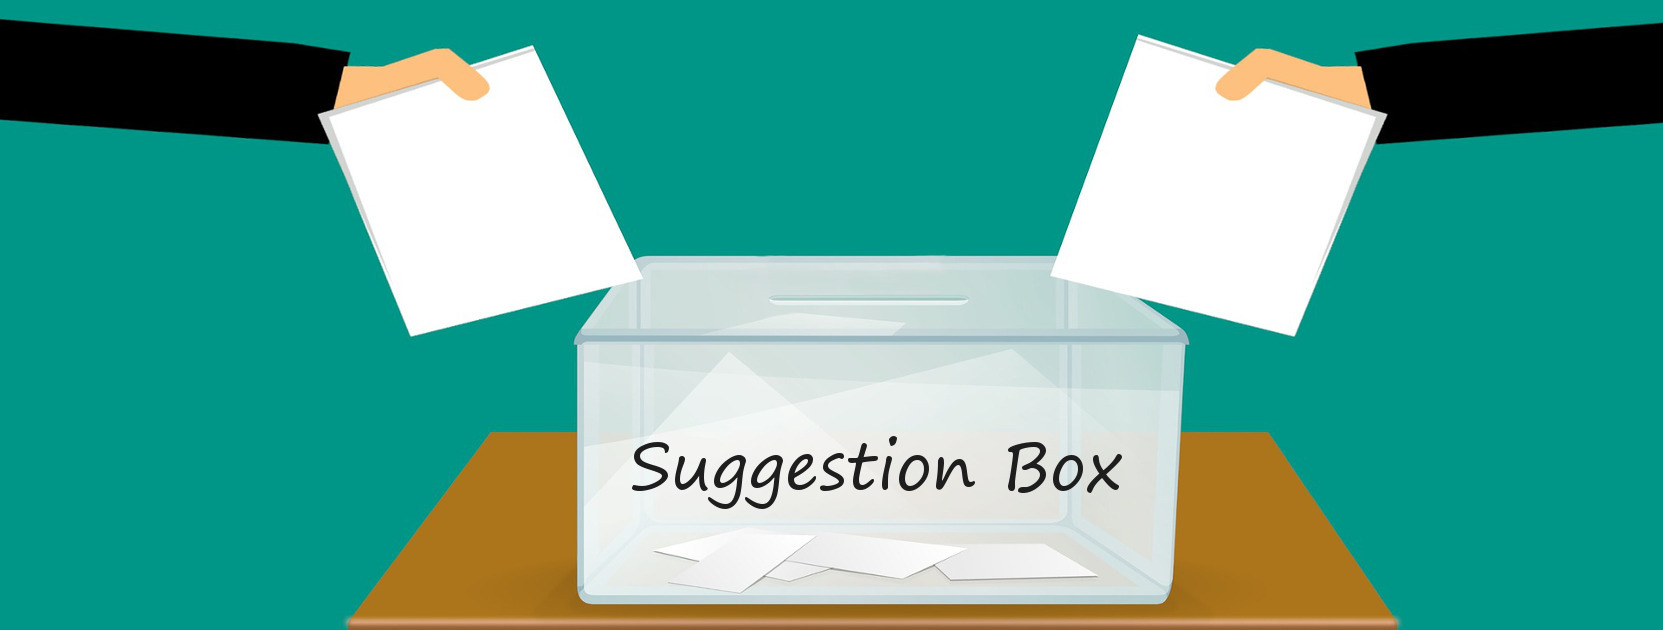 Please provide your feature suggestion in the box below. All suggestions are welcomed!